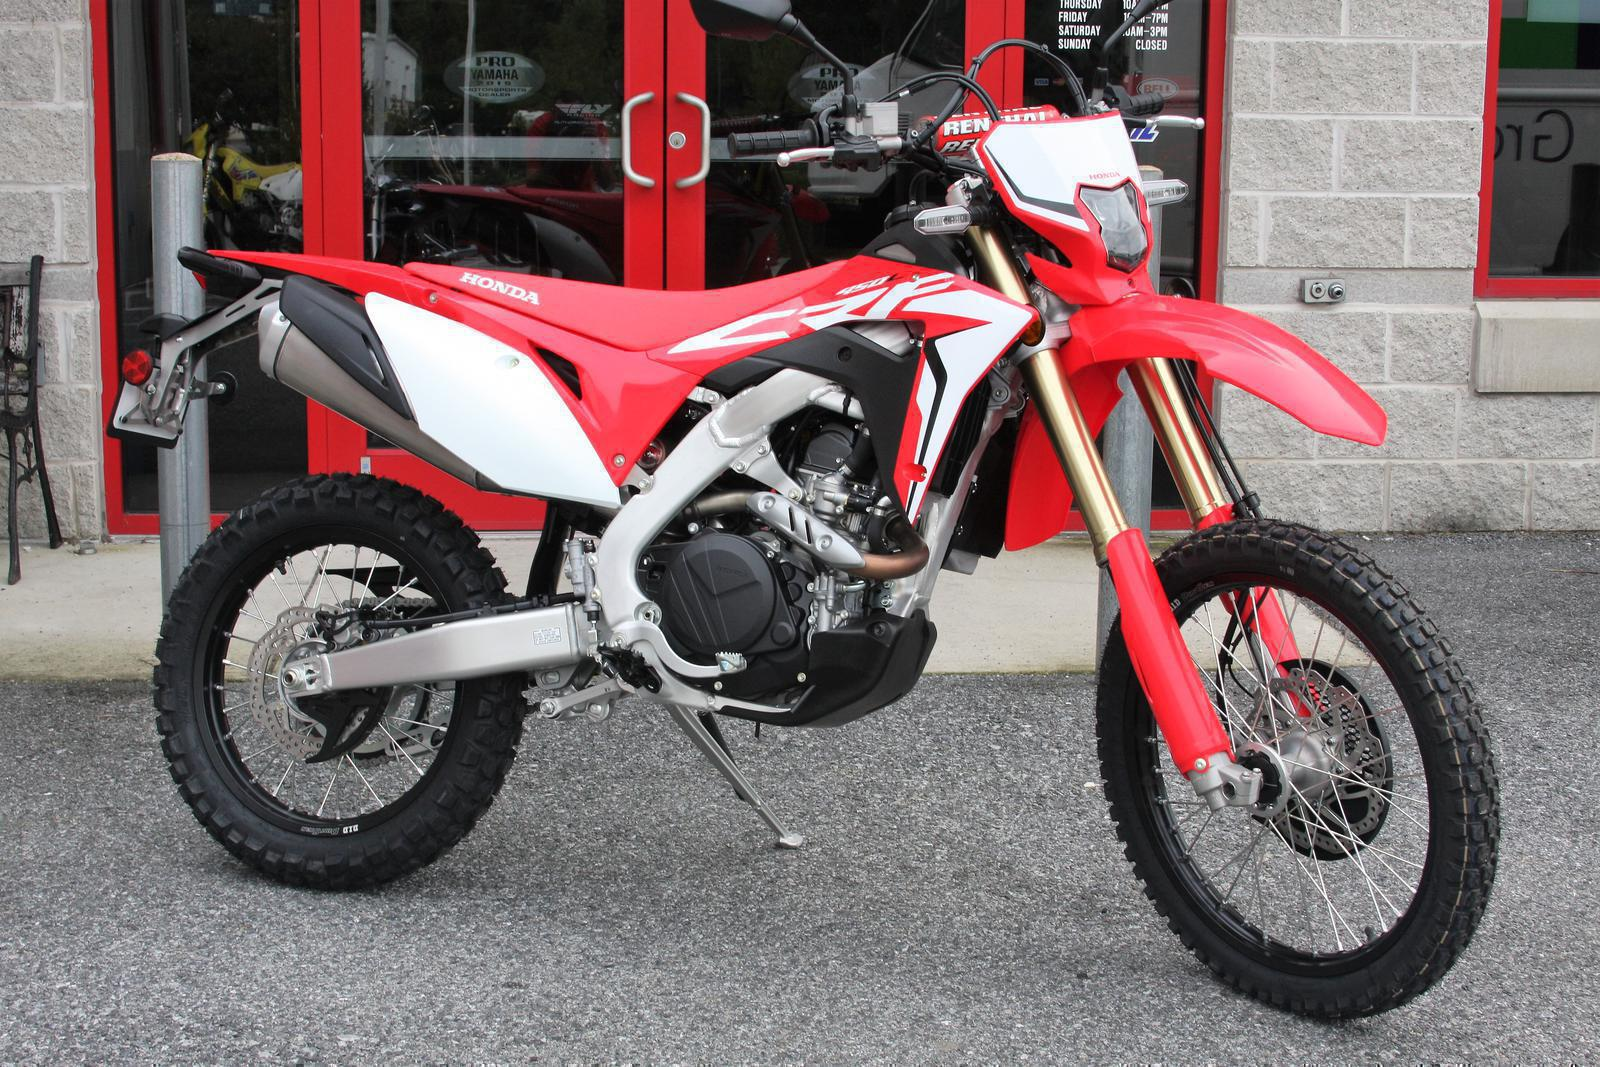 2019 Honda Crf450l For Sale In York Pa Ams Action Motorsports York